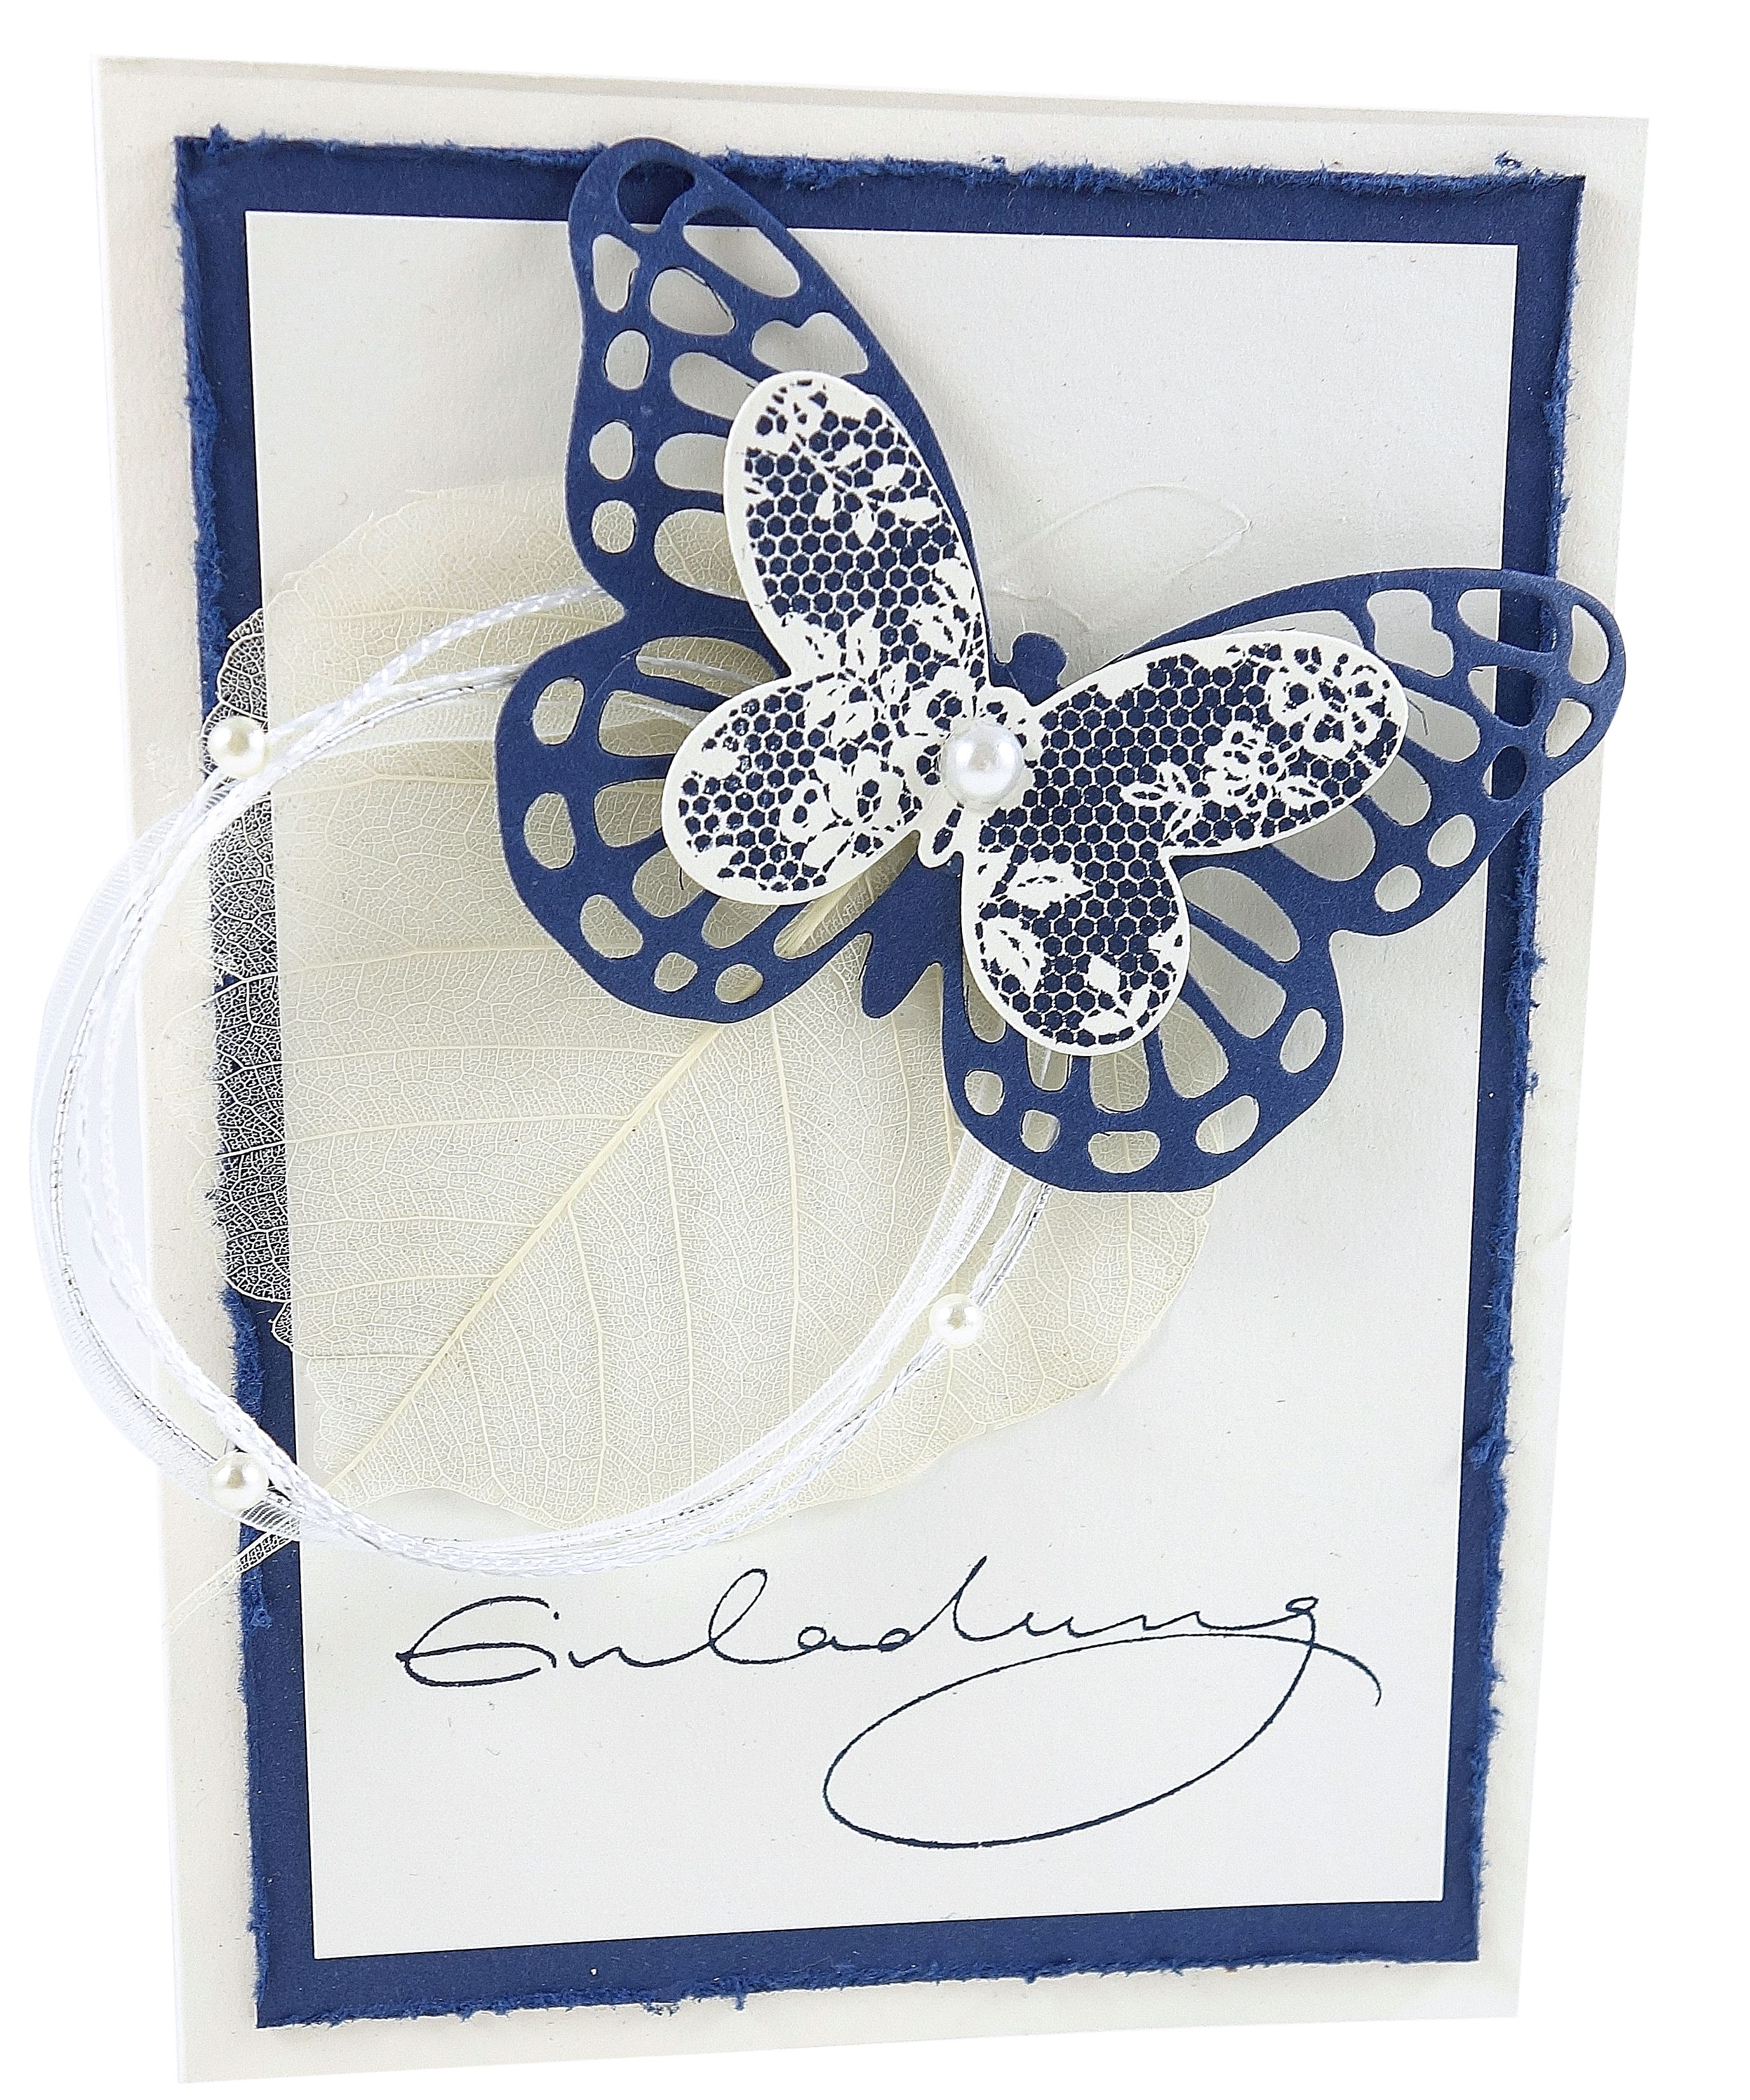 Geburtstagseinladung blue butterfly geburtstagseinladung birthday invitation invitation einladung papercraft stationary papeterie butterfly